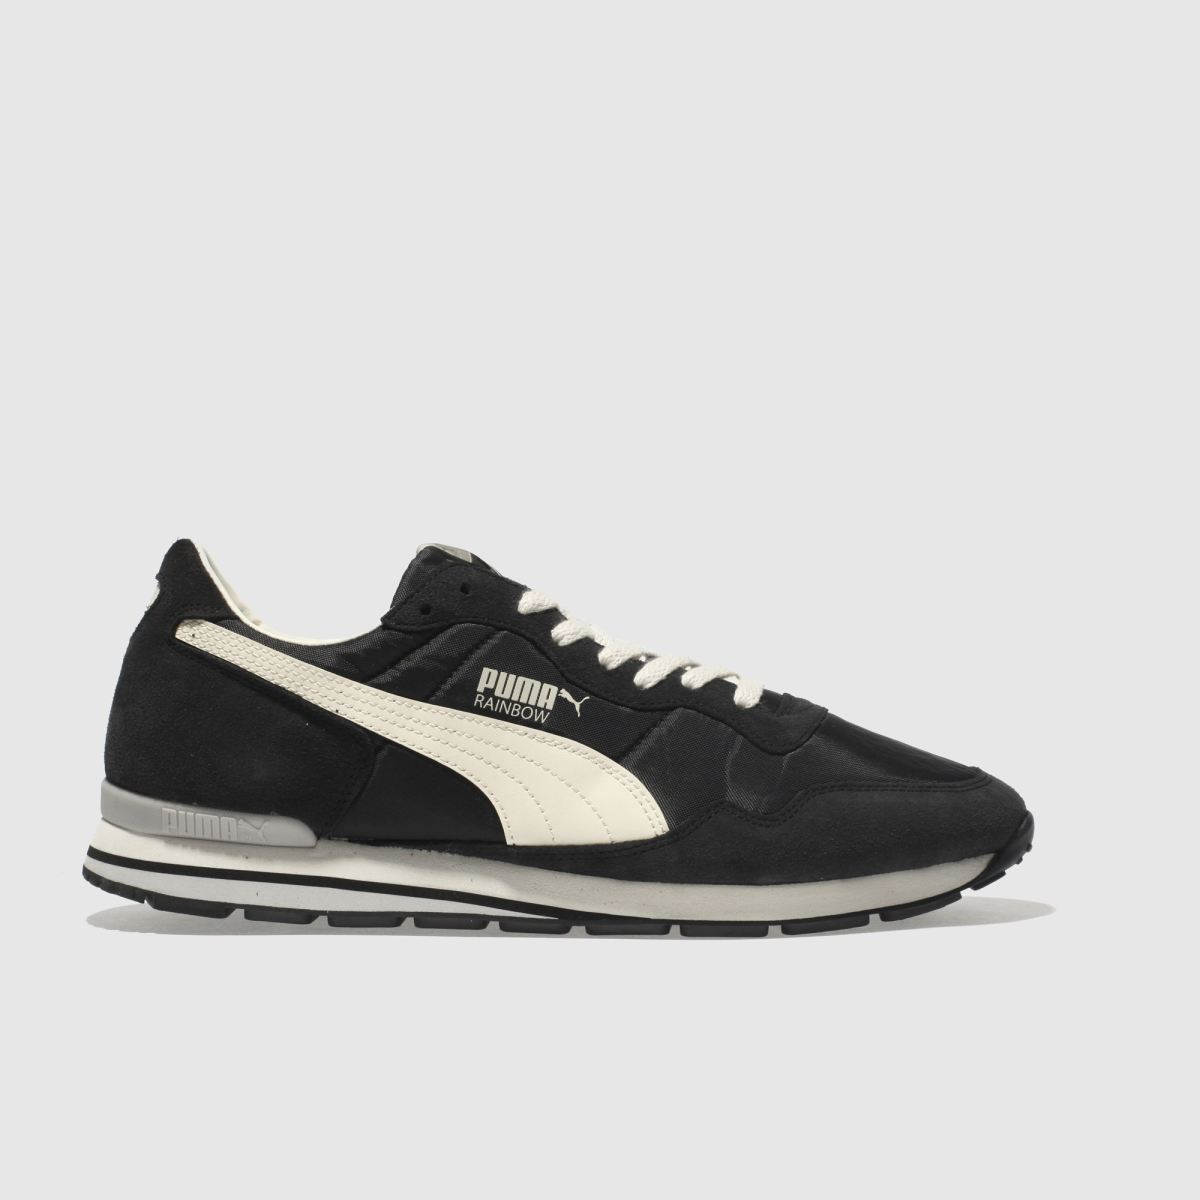 Puma Black & White Rainbow Sc Trainers